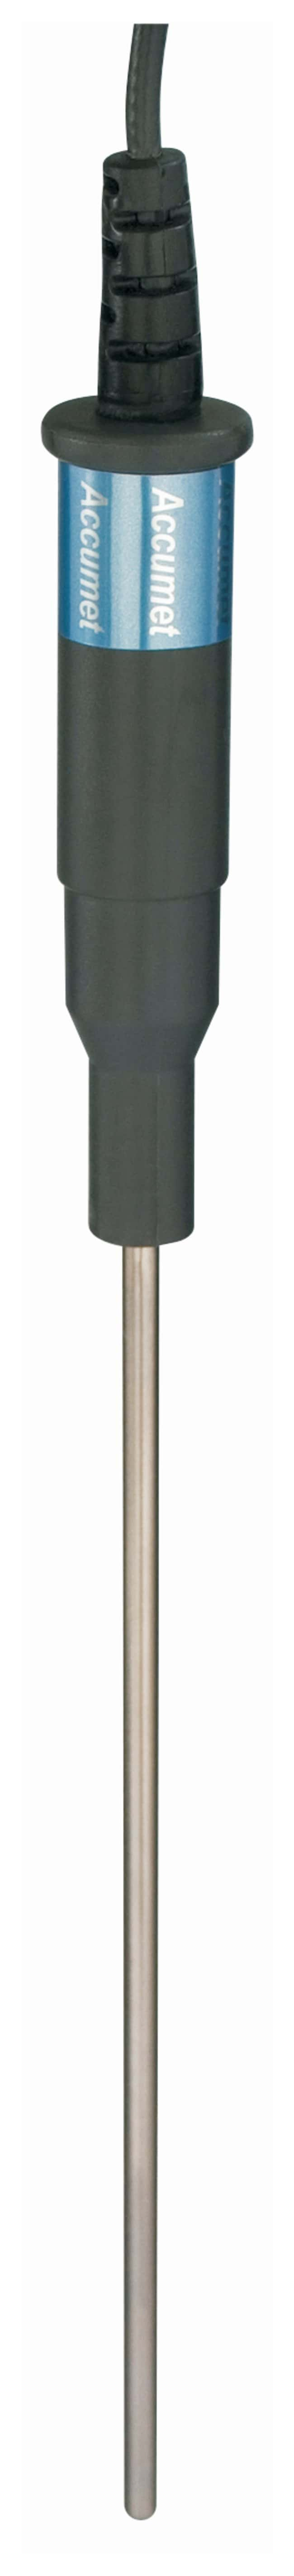 Fisherbrand™ accumet™ Automatic Temperature Compensation Probes - Mercury - Free